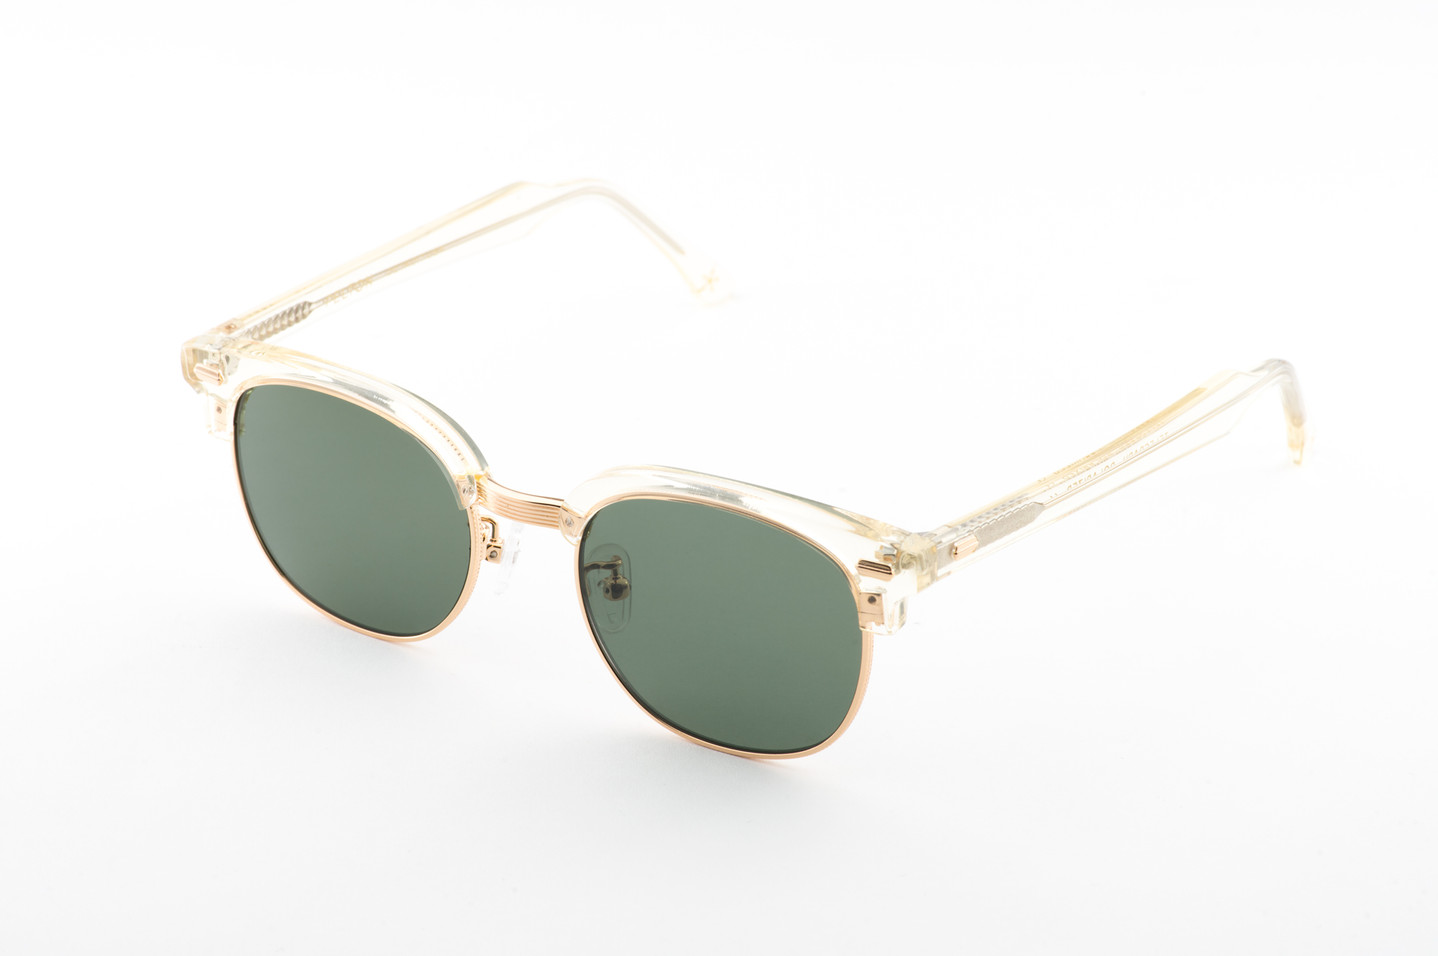 Pelton Telegraph Sunglasses